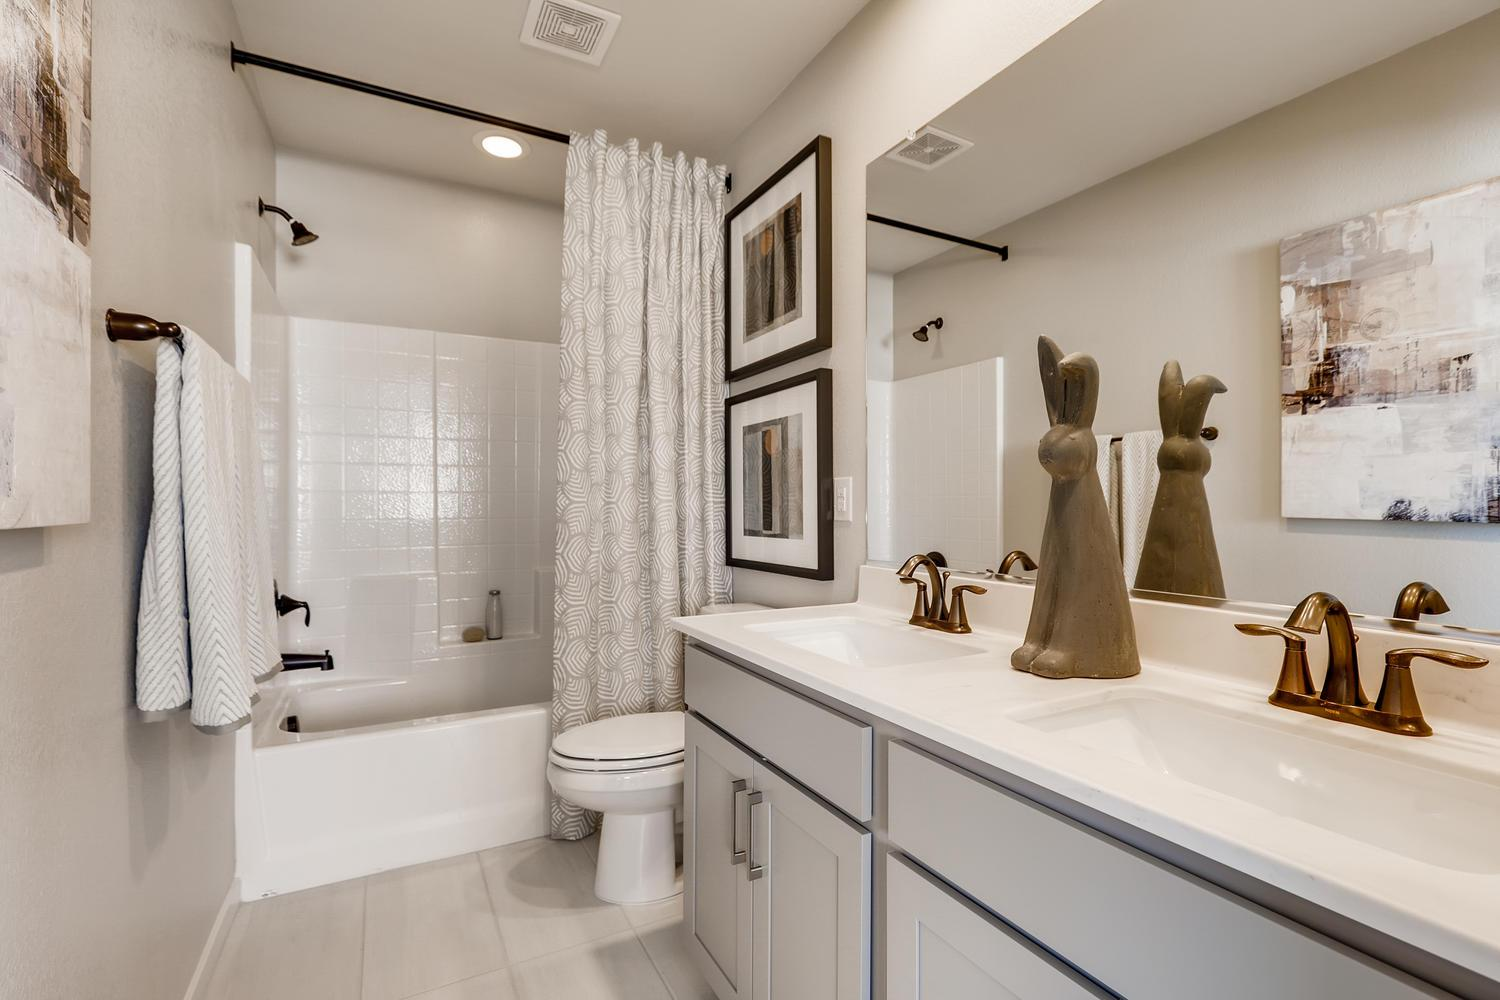 Bathroom featured in the Magnolia at Silverleaf By Taylor Morrison in Las Vegas, NV